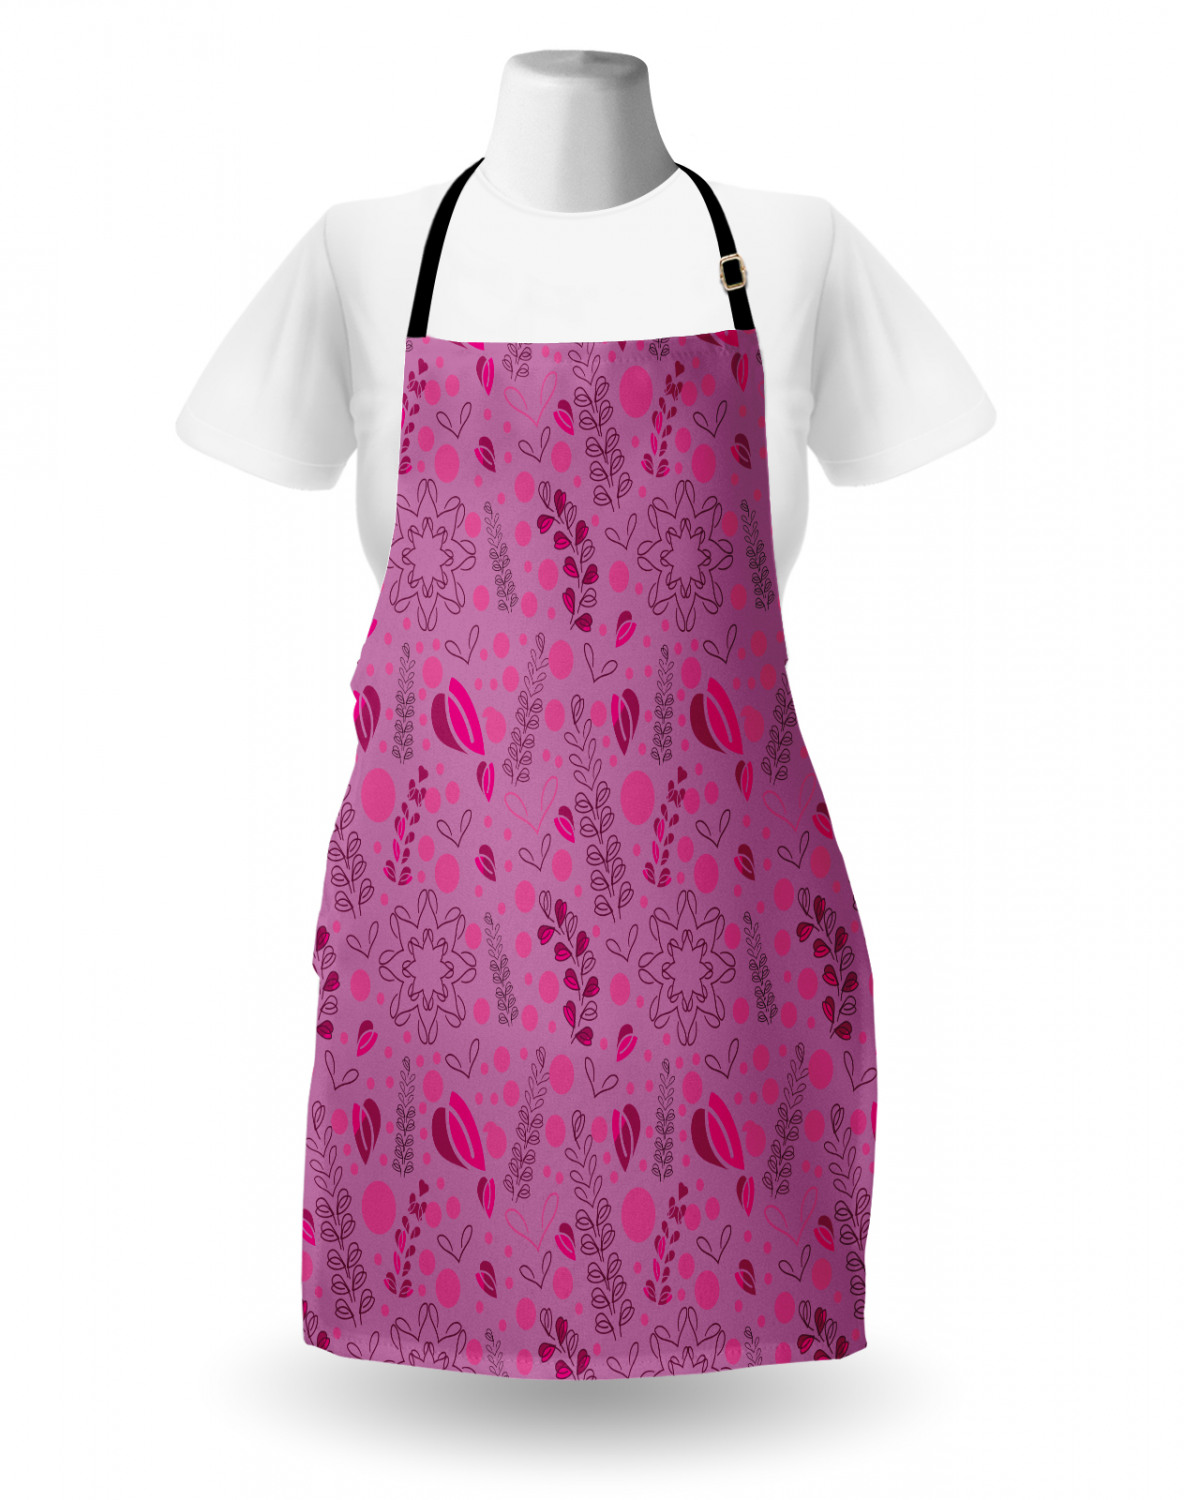 Ambesonne-Outdoor-Use-Apron-with-Adjustable-Neck-Strap-for-Gardening-and-Cooking miniatura 101